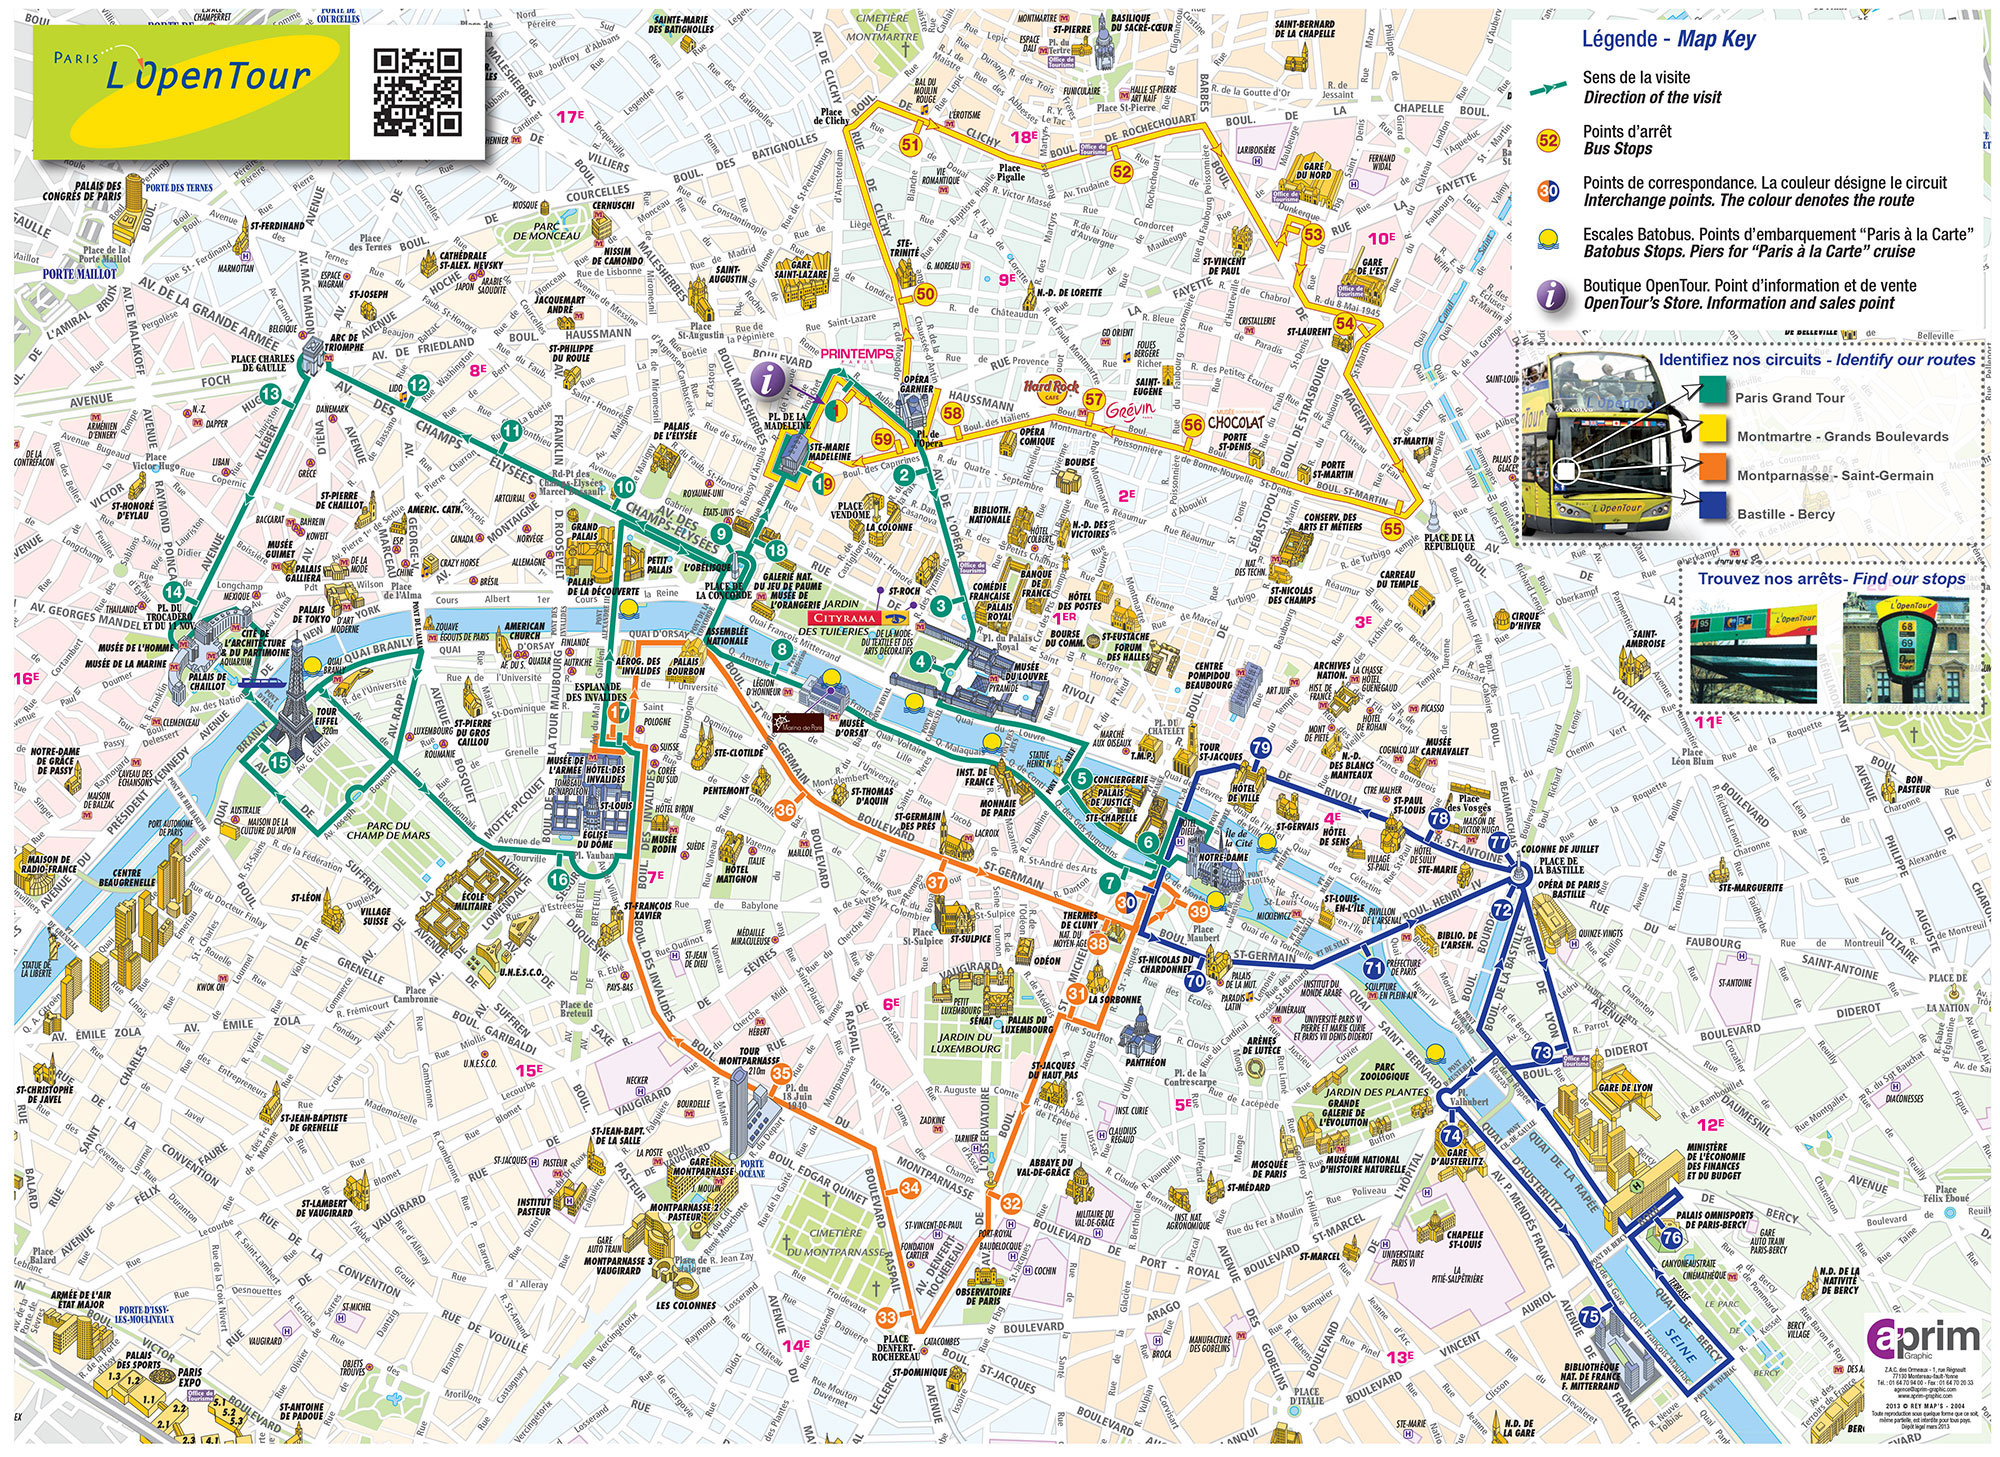 carte touristique de paris - Plan du Bus Open Tour